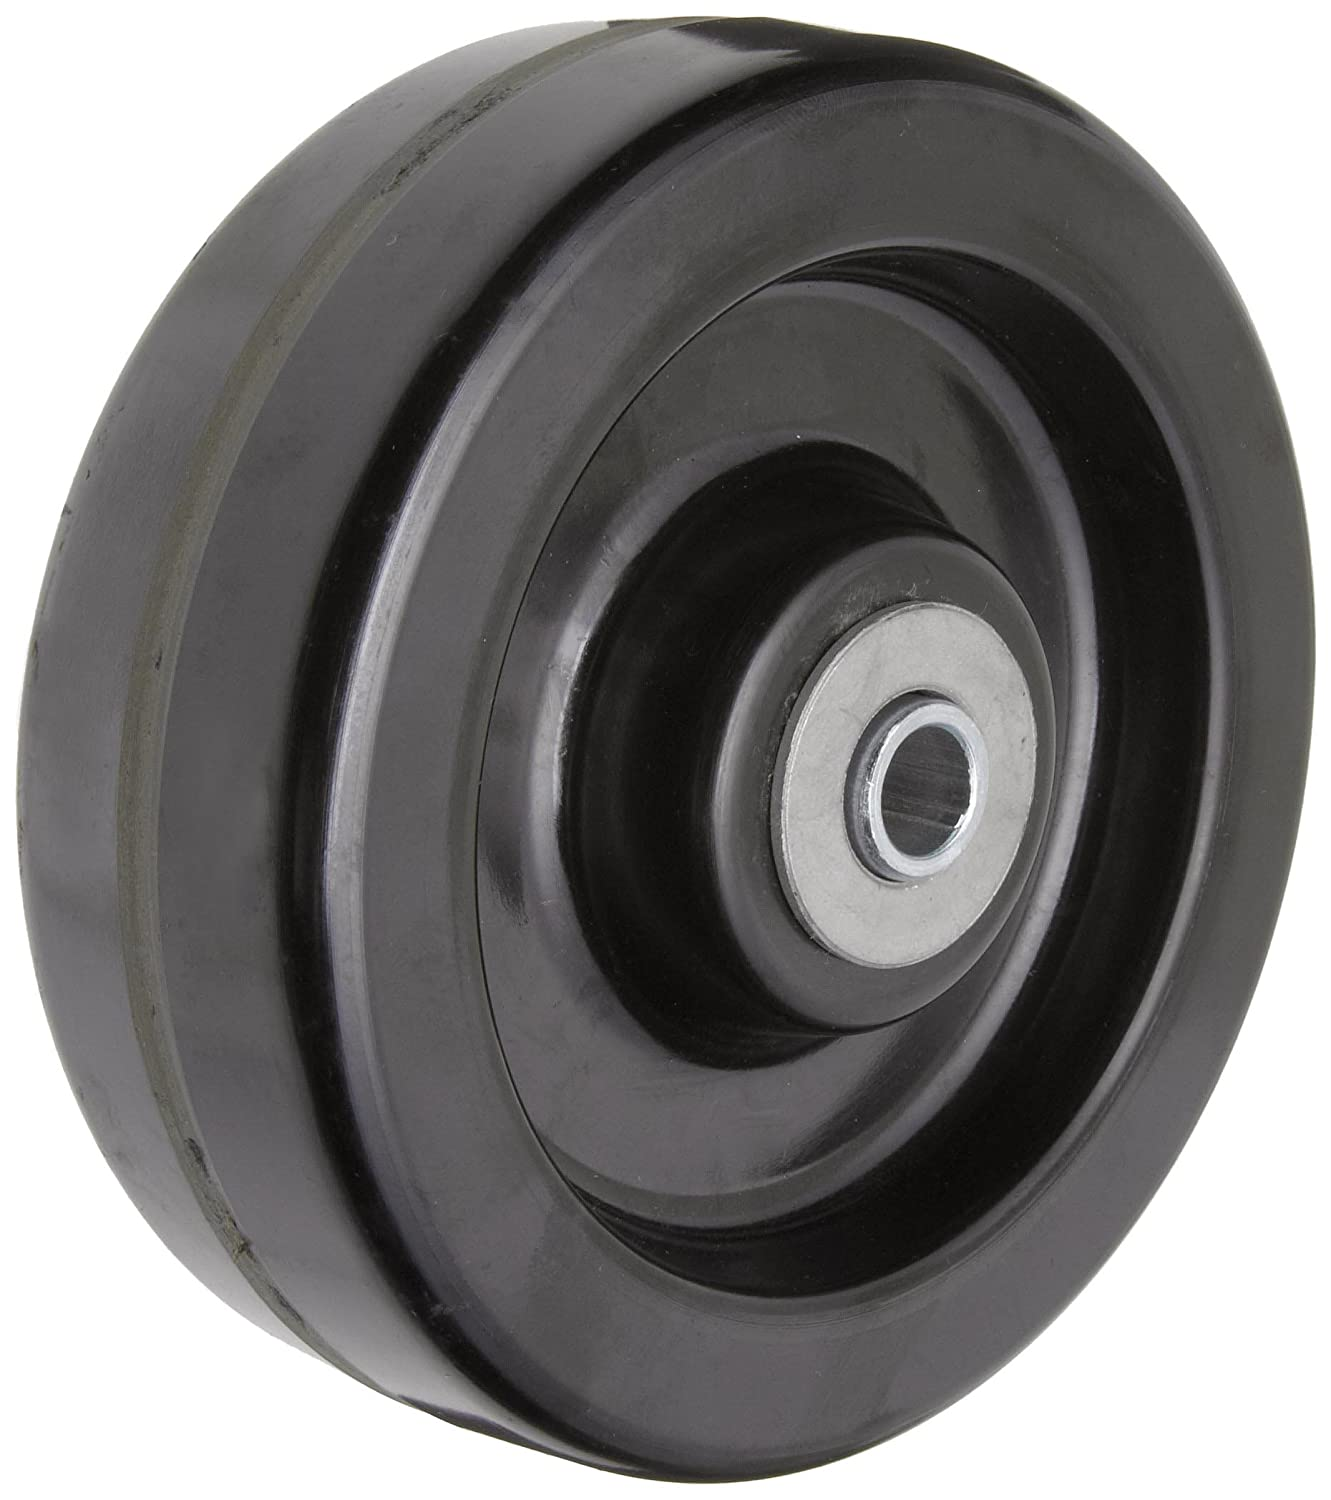 RWM Casters DUR 0620 08 6 Diameter X 2 Width Durastan Phenolic Wheel with Straight Roller Bearing 1200 lbs Capacity 1 2 Axle Diameter